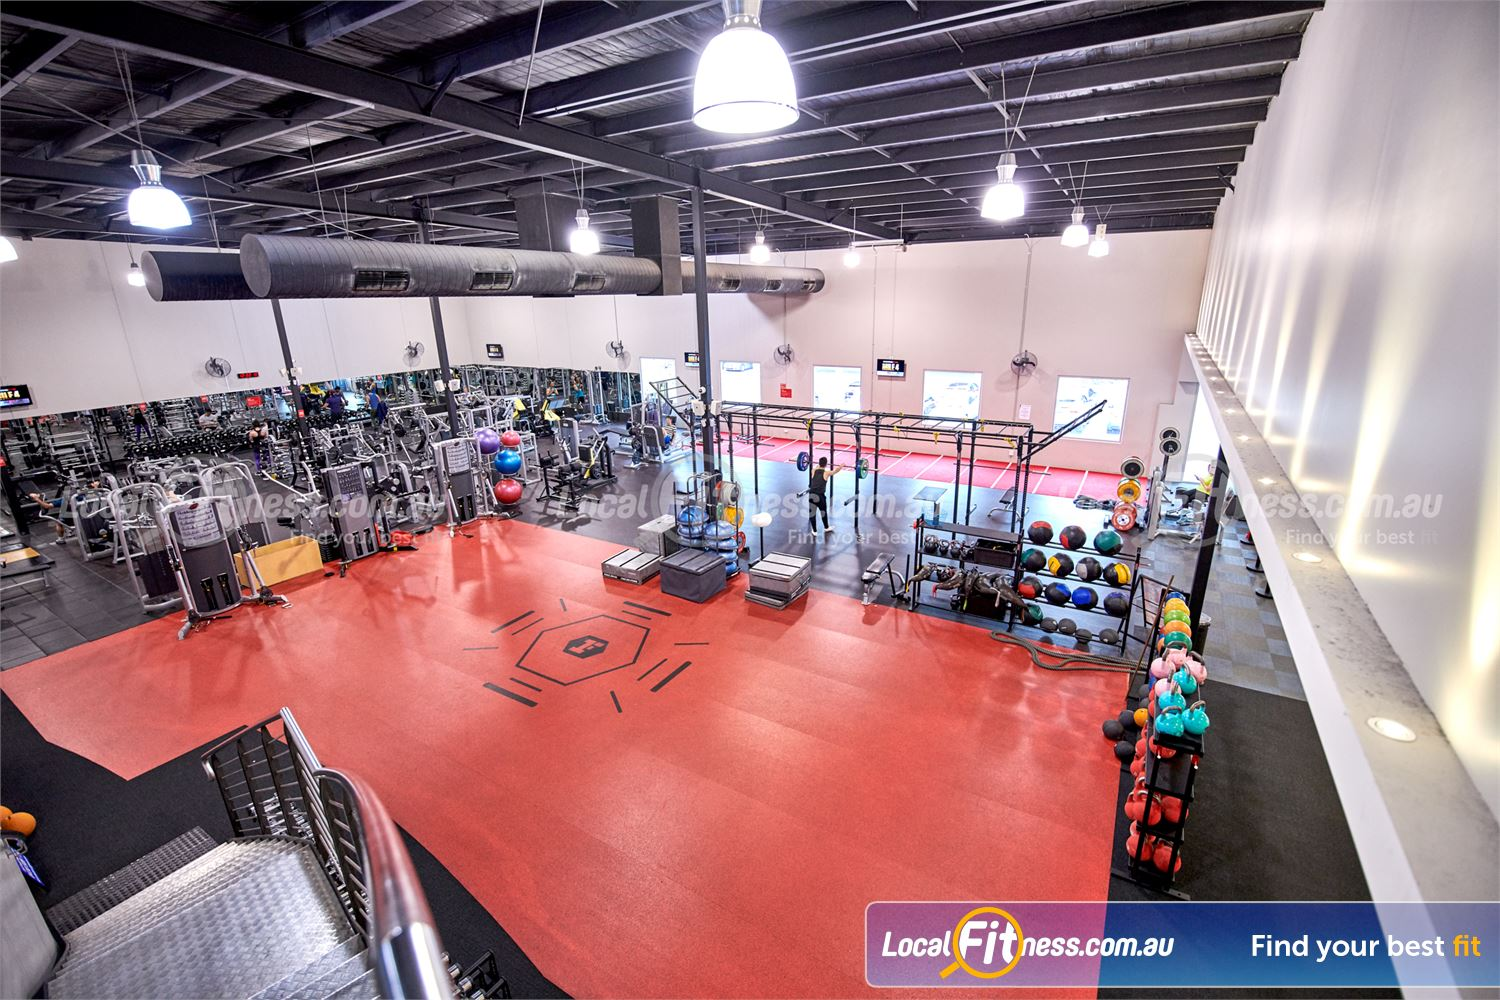 Fitness First Glen Waverley Welcome to the Fitness First 24-hour Glen Waverley gym.